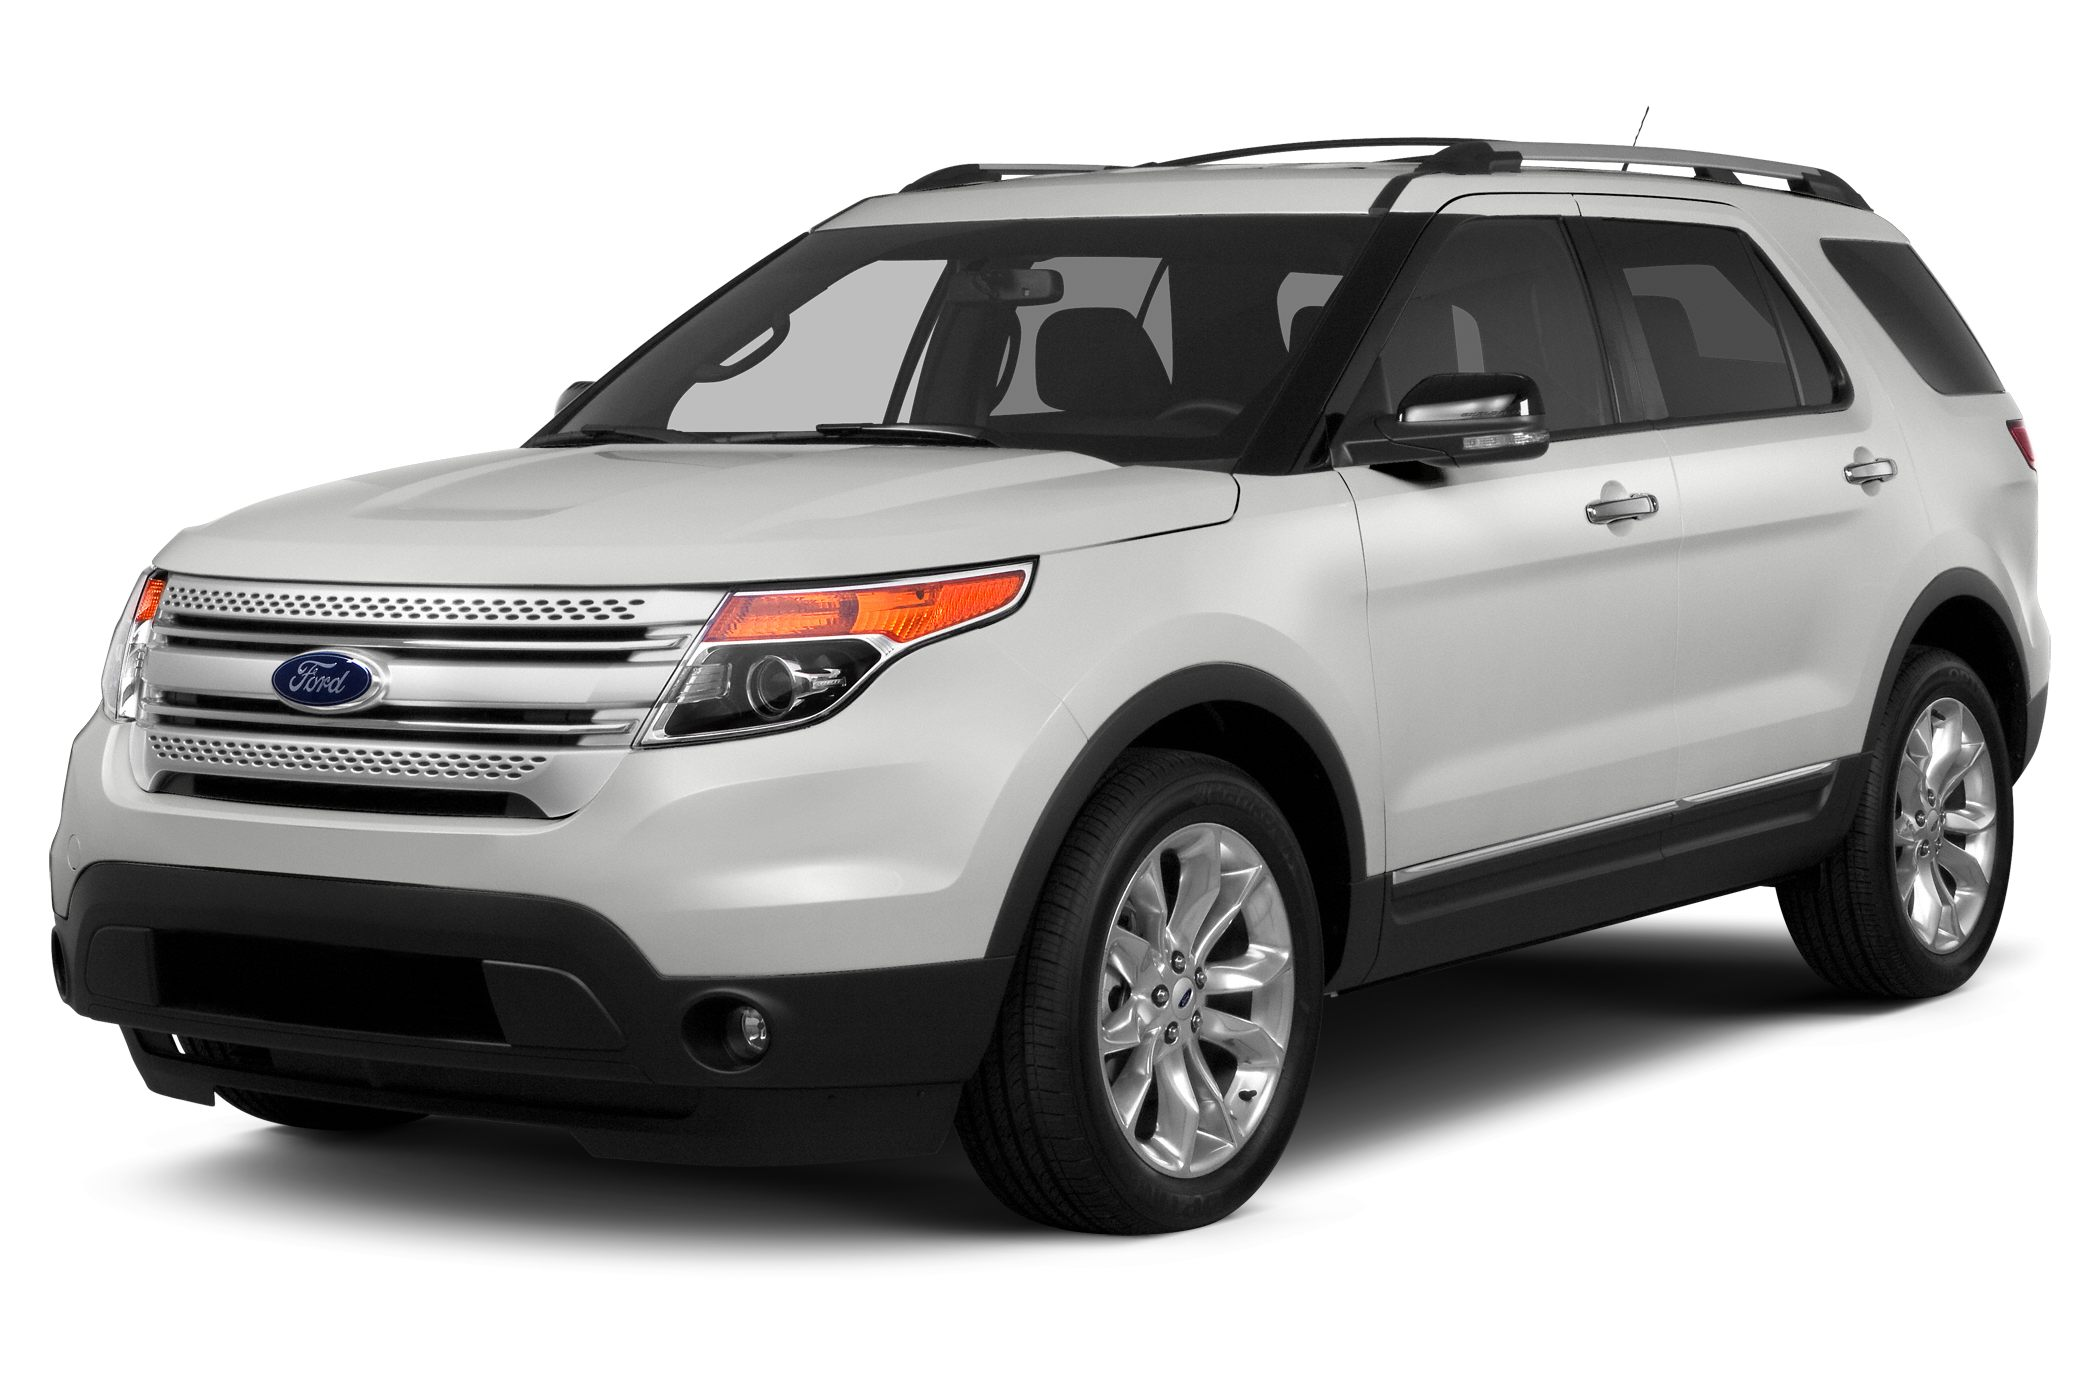 2015 Ford Explorer XLT SUV for sale in Clinton for $42,675 with 3 miles.